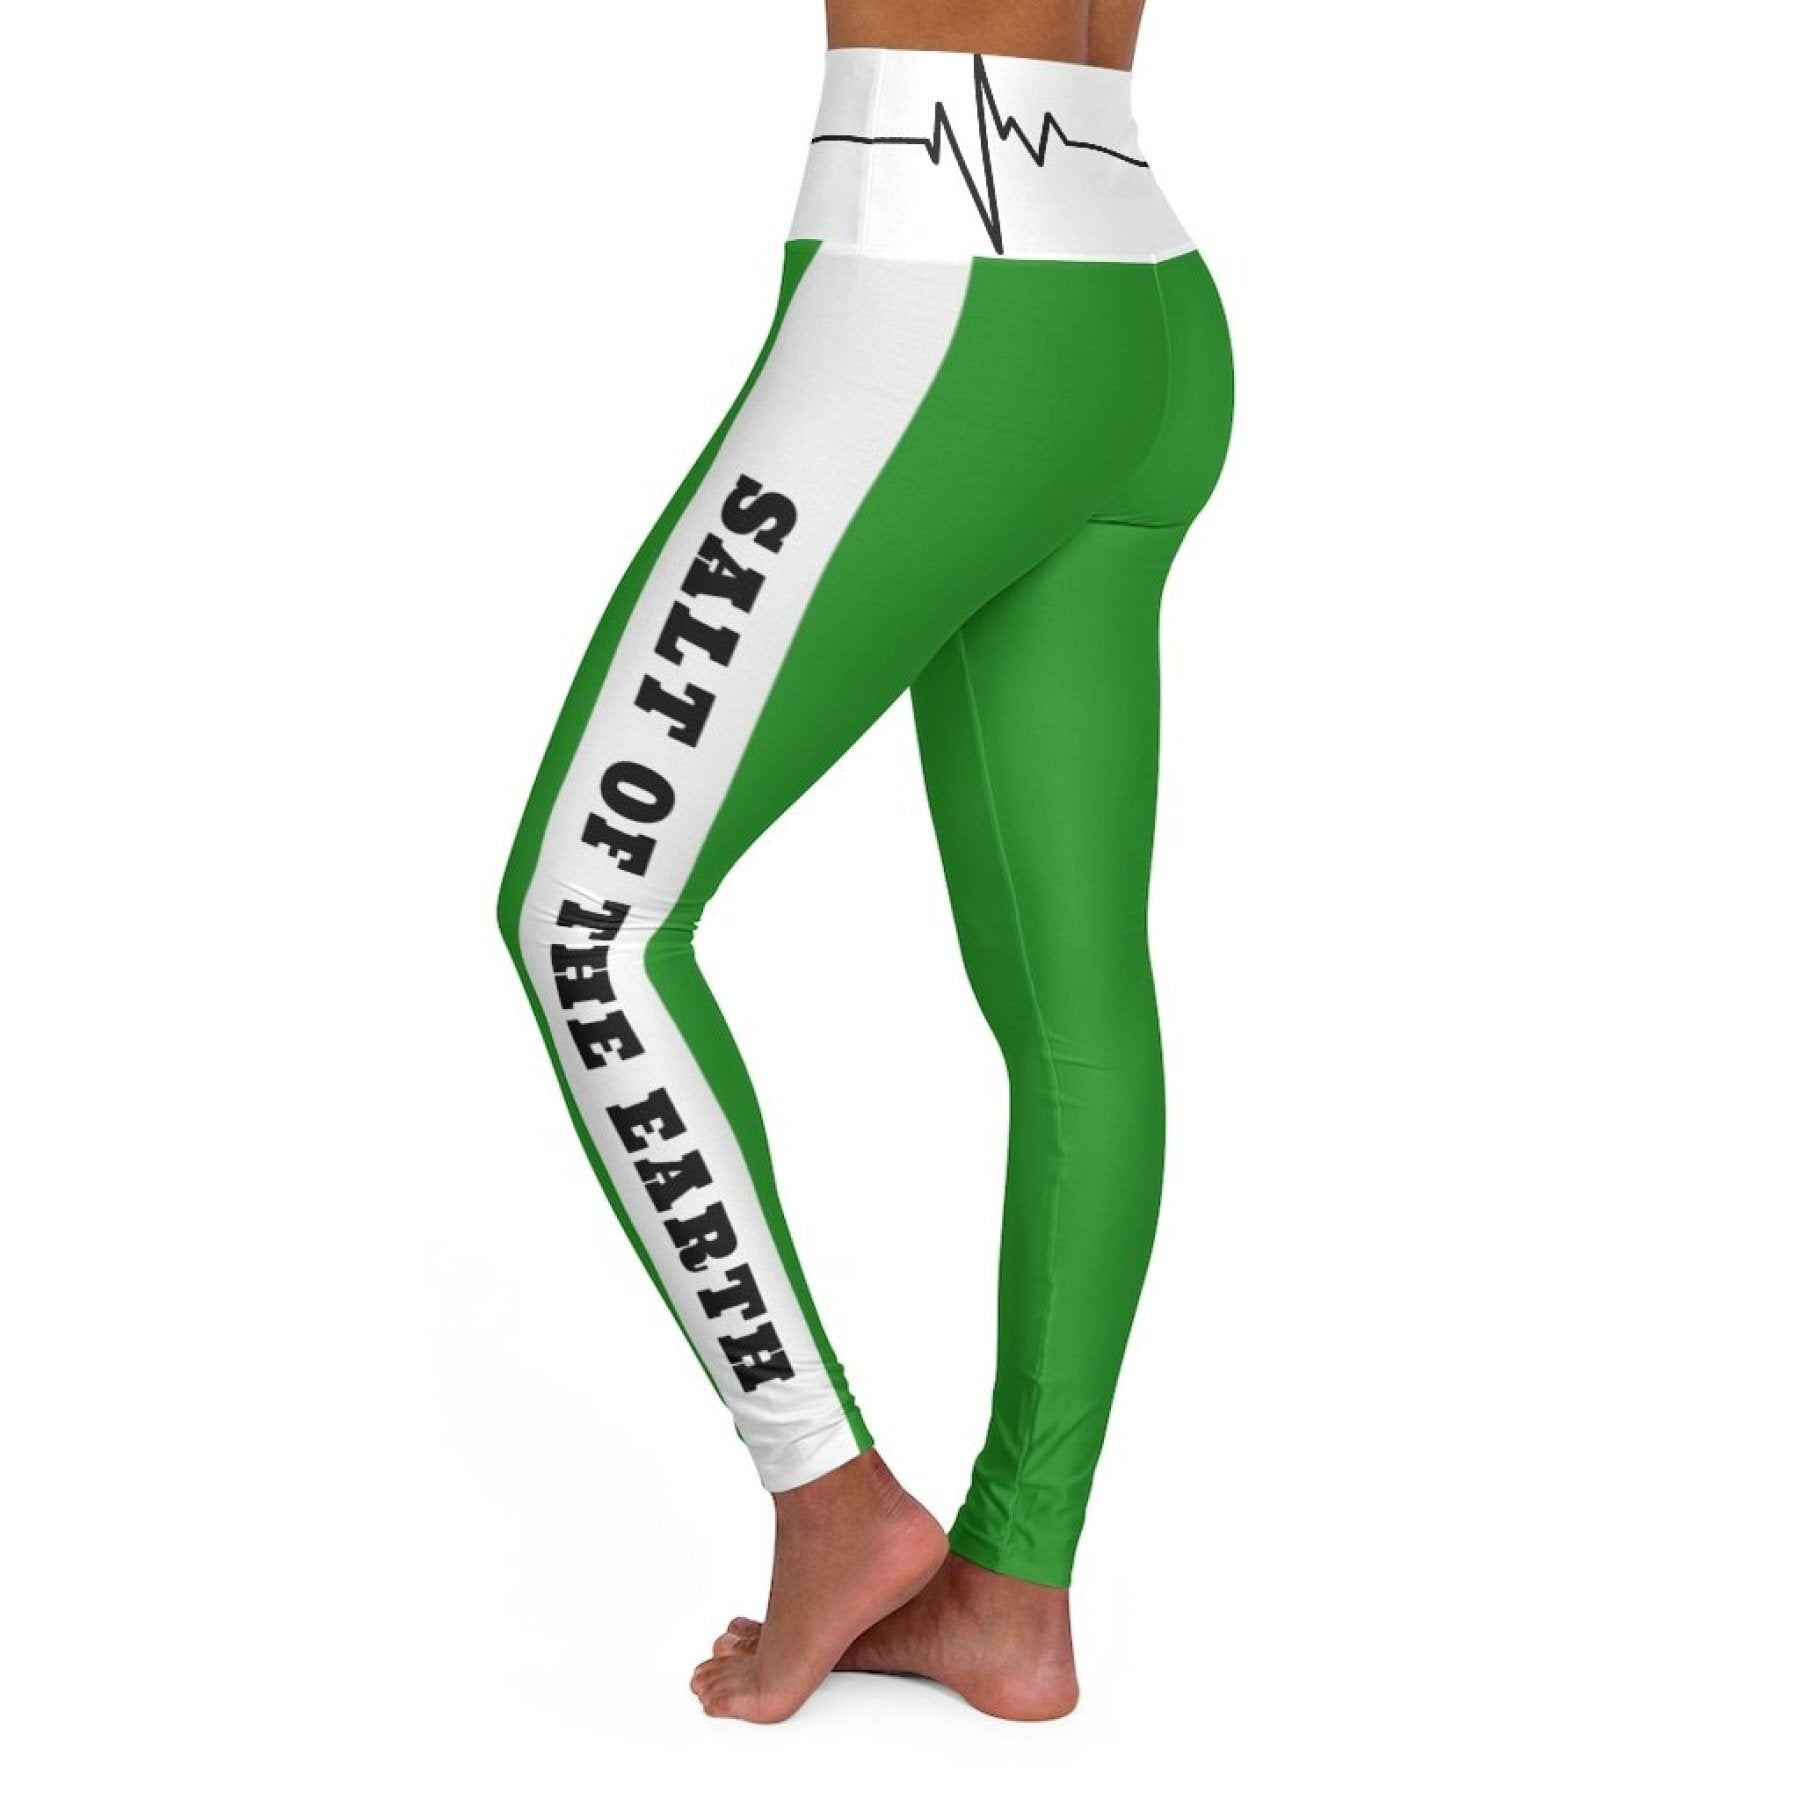 High Waisted Yoga Leggings, Forest Green Salt of the Earth Matthew 5:13 Beating Heart Sports Pants